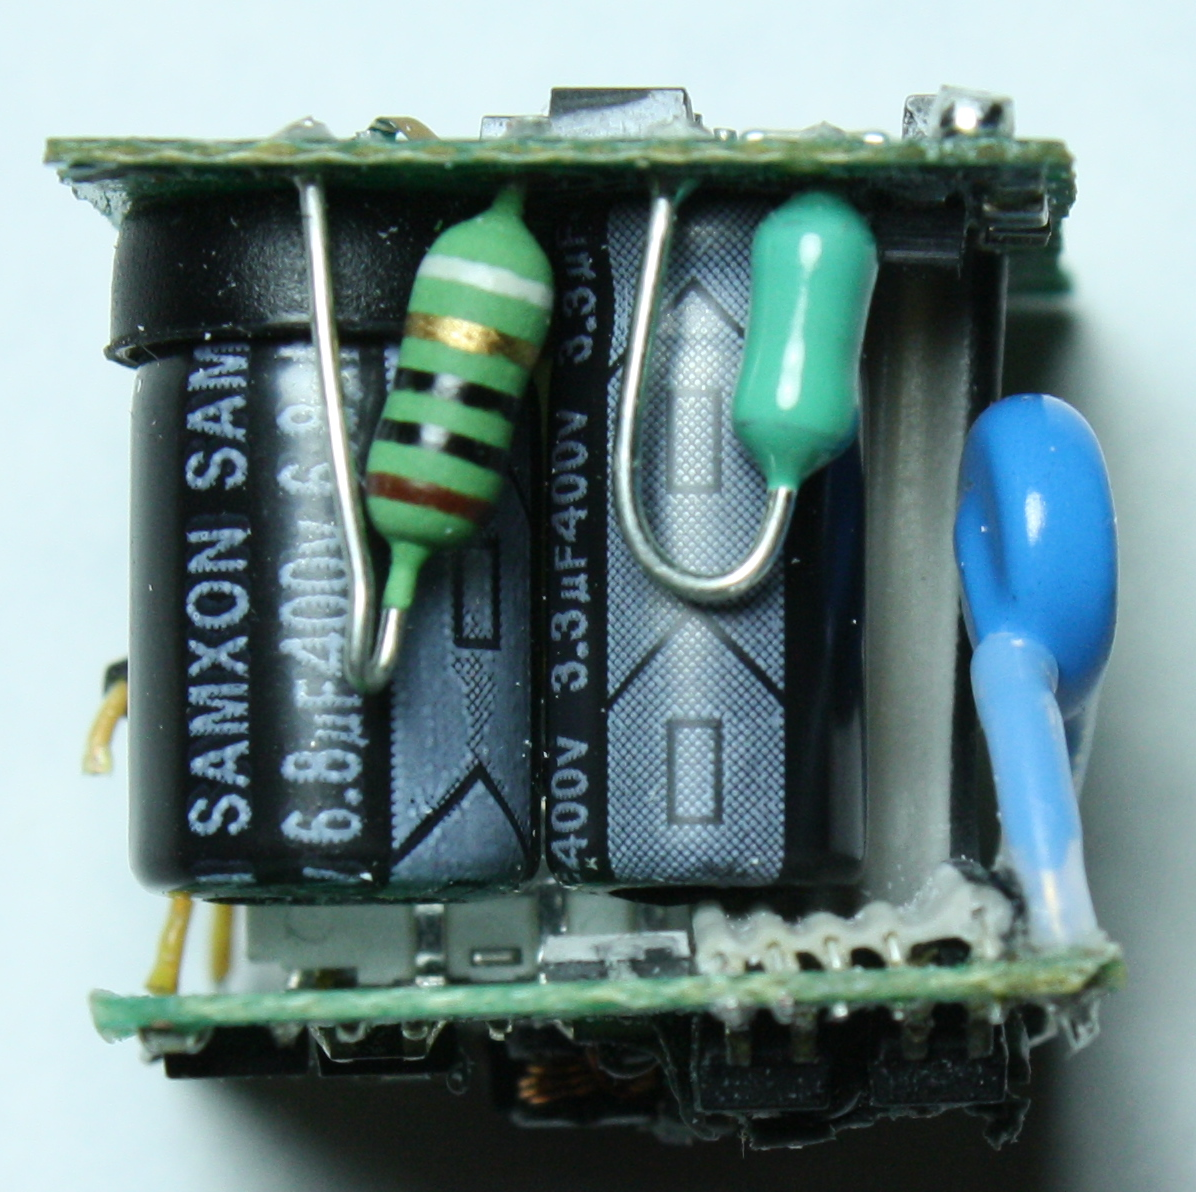 Simple And Utility Lithium Battery Charger Circuit Powersupply Apple Iphone Teardown Quality In A Tiny Expensive Package Showing The Fusible Resistor Striped Inductor Green